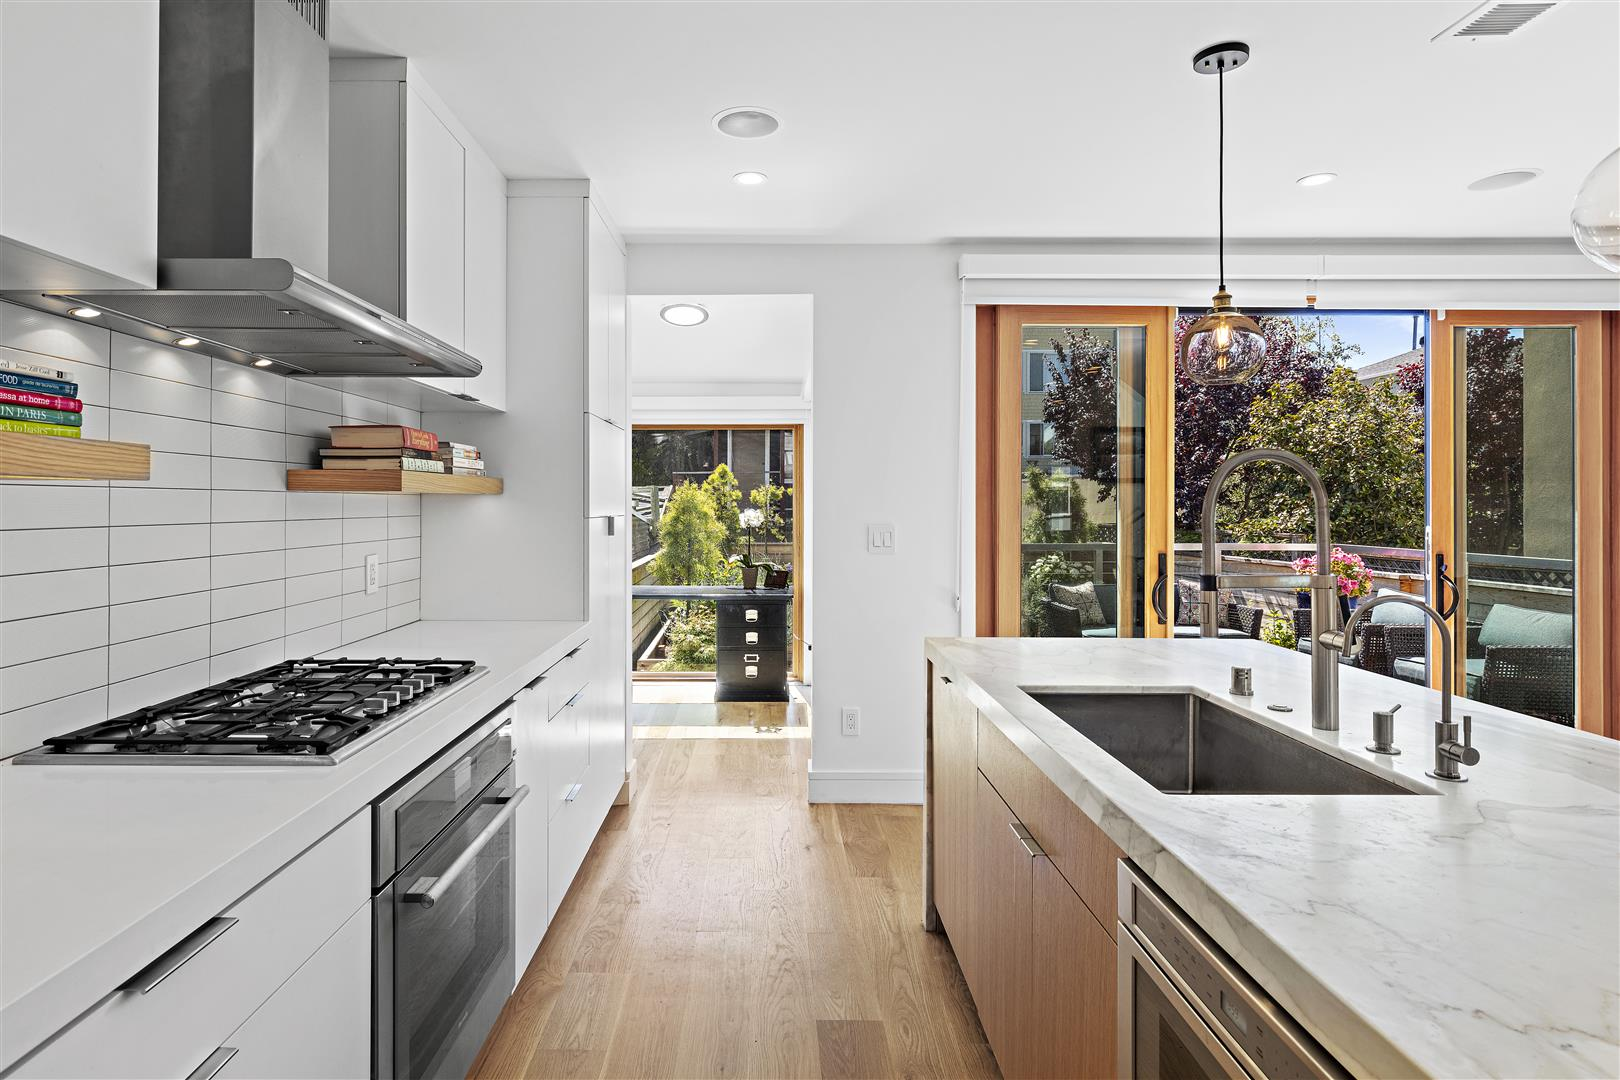 3b-MLS-375-30th-Ave-San-Francisco27.jpg #3